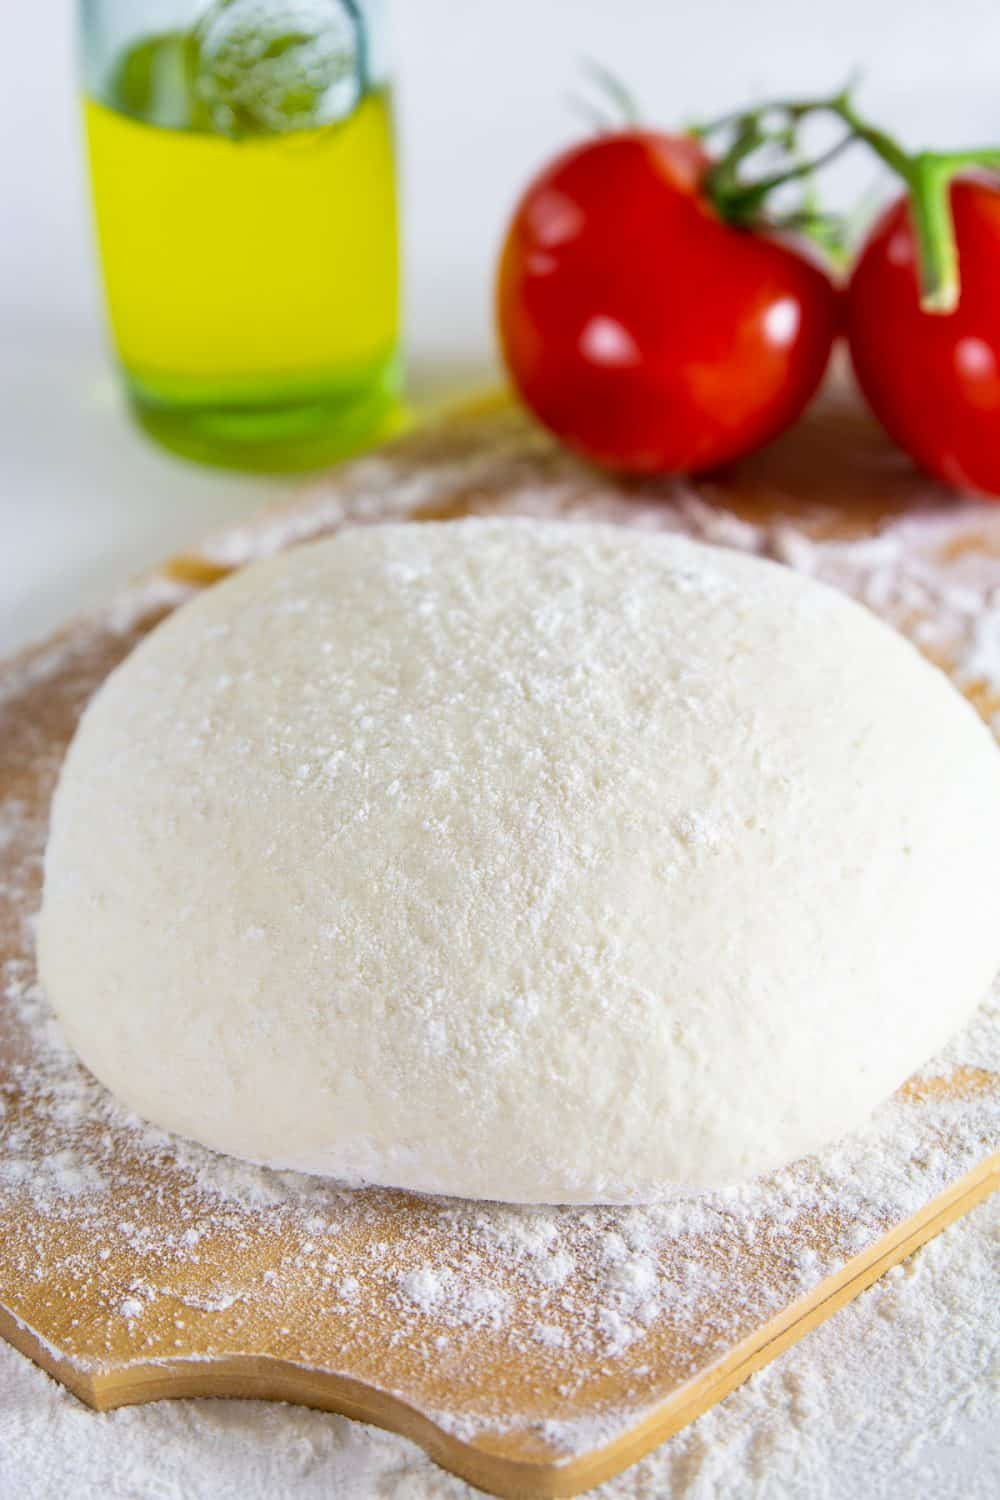 a close up image of a homemade pizza dough on a wooden cutting board with tomatoes, and olive oil in the background